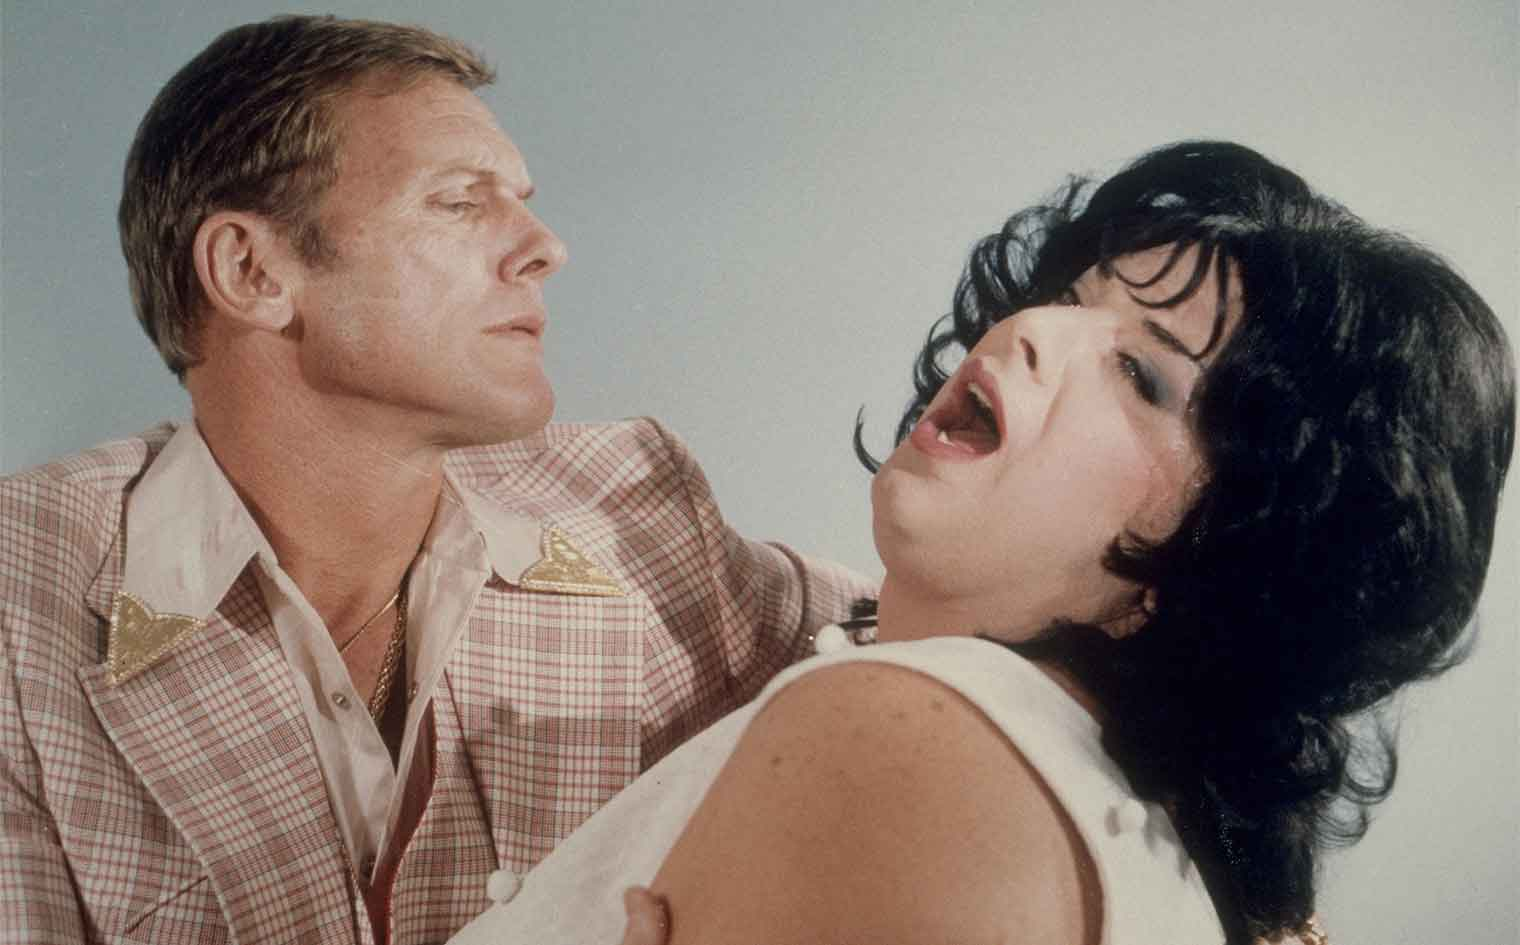 POLYESTER in ODORAMA introduced by Tab Hunter